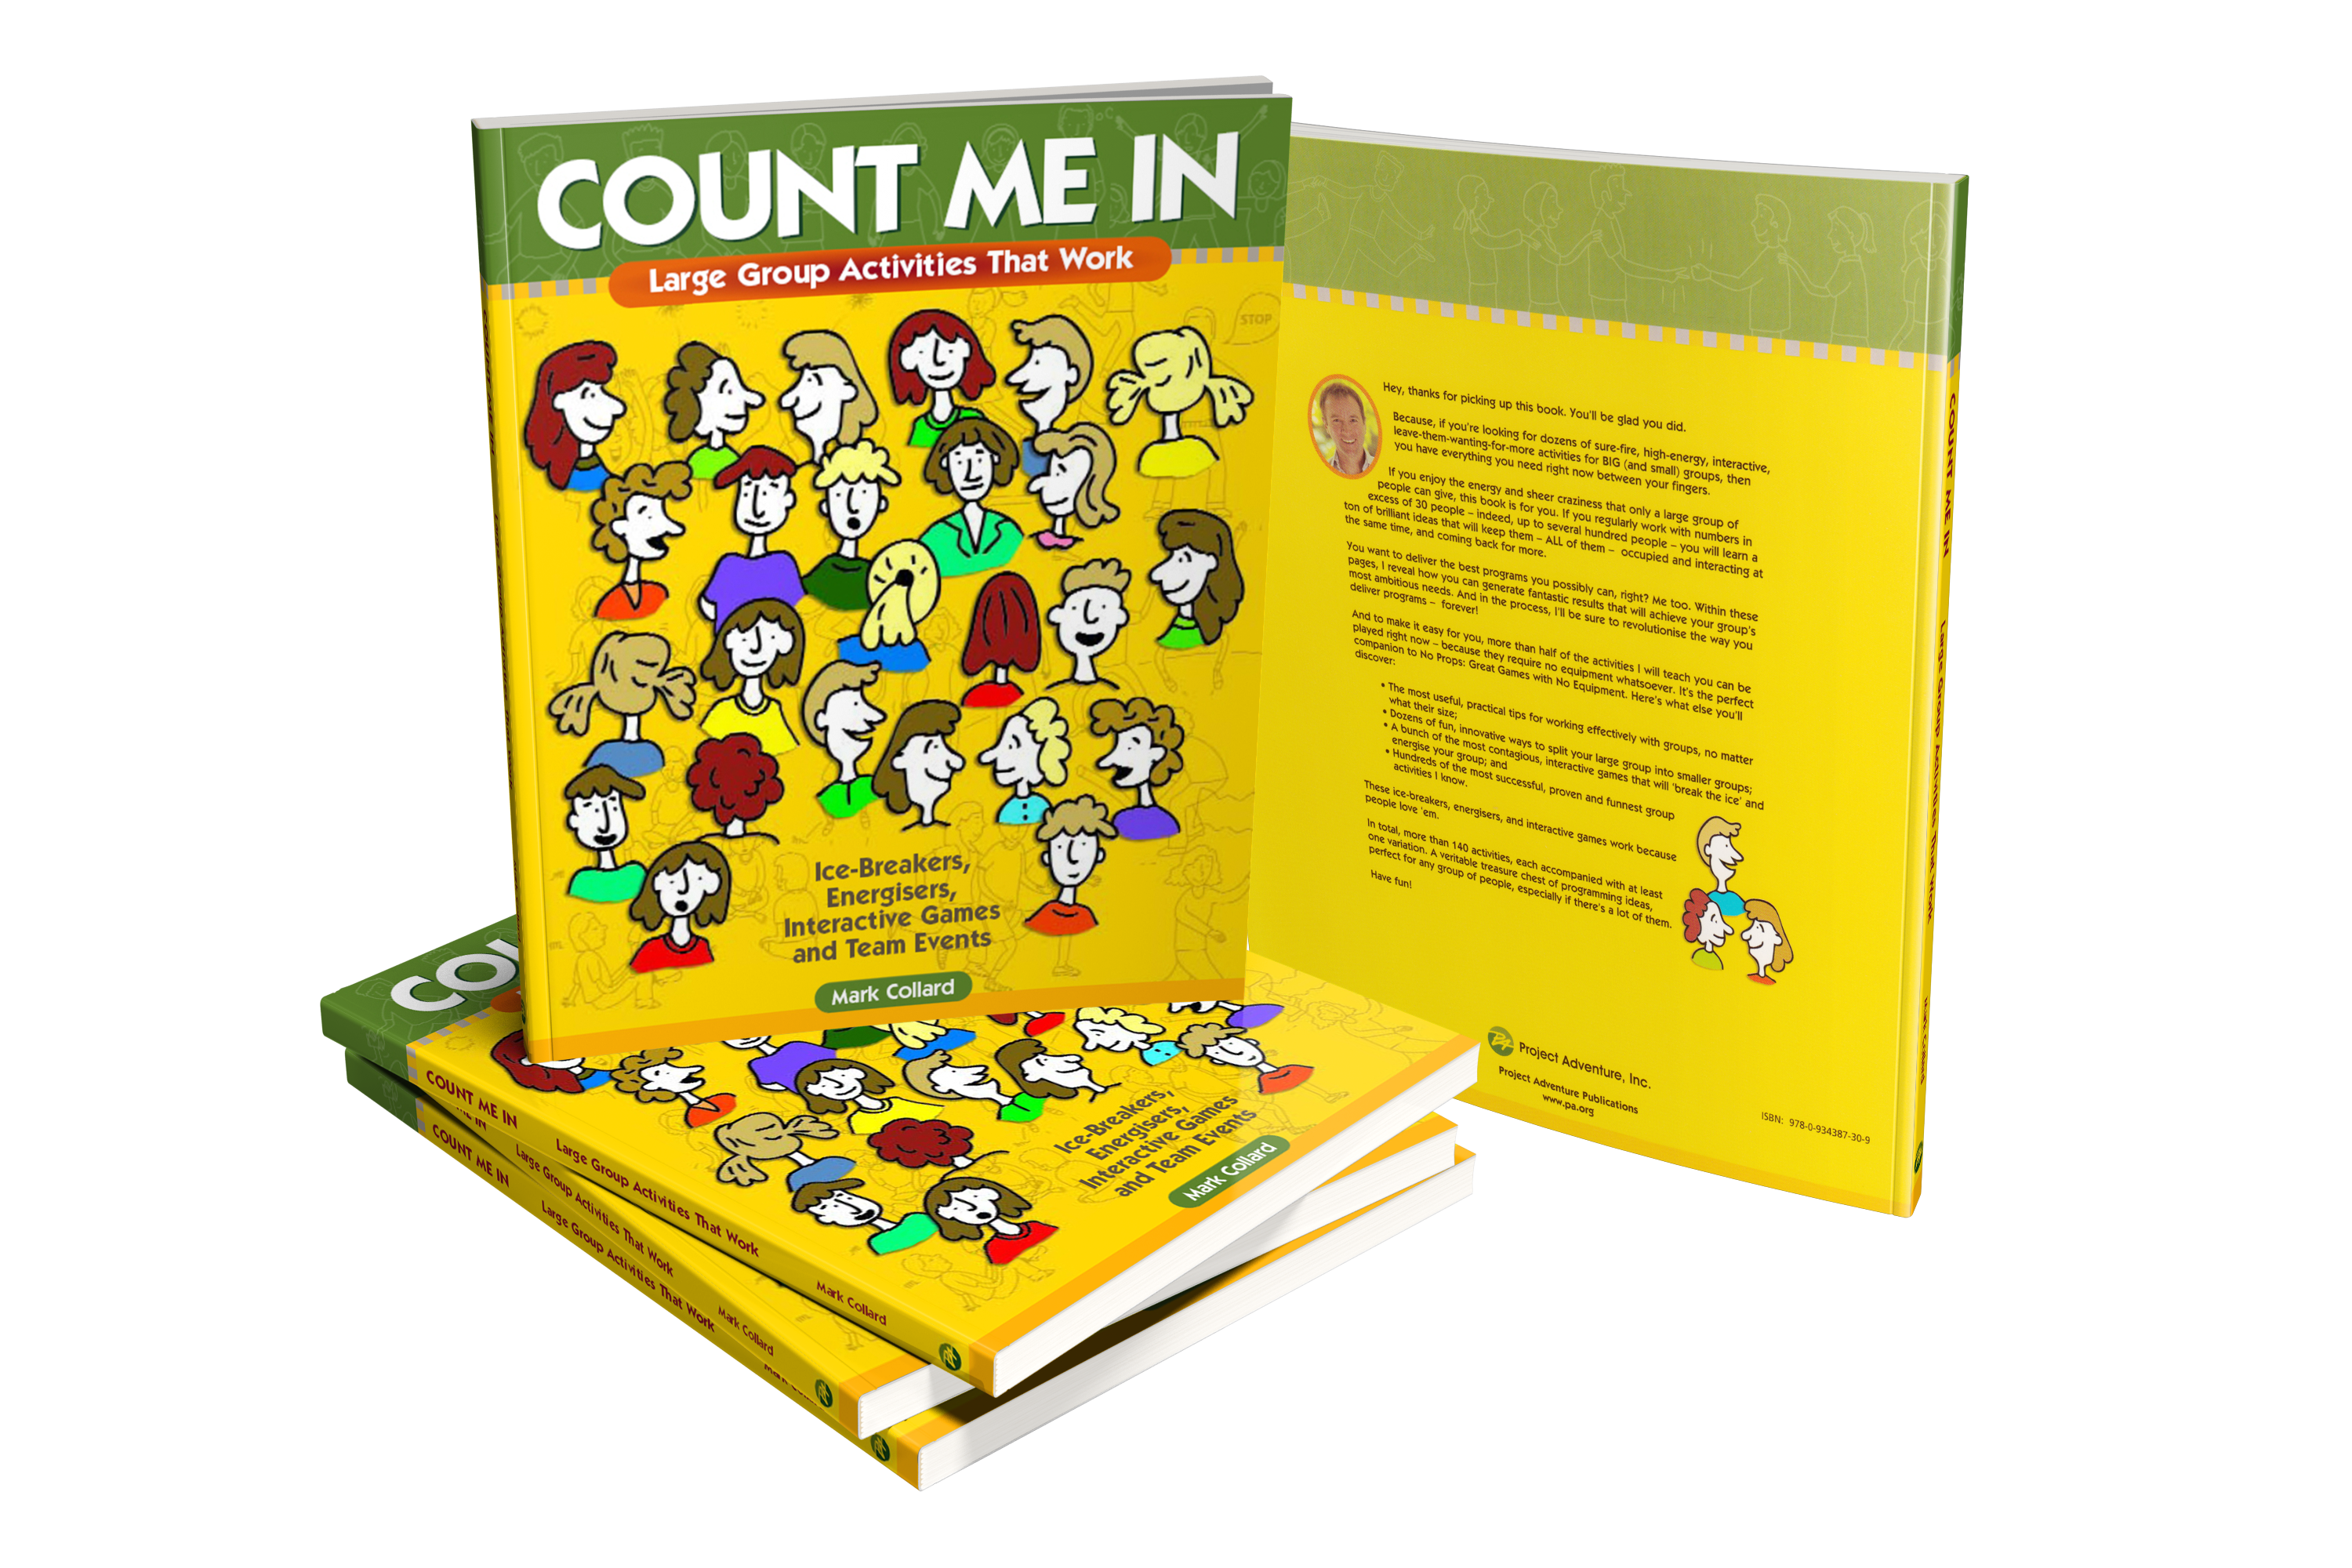 Count Me In by Mark Collard